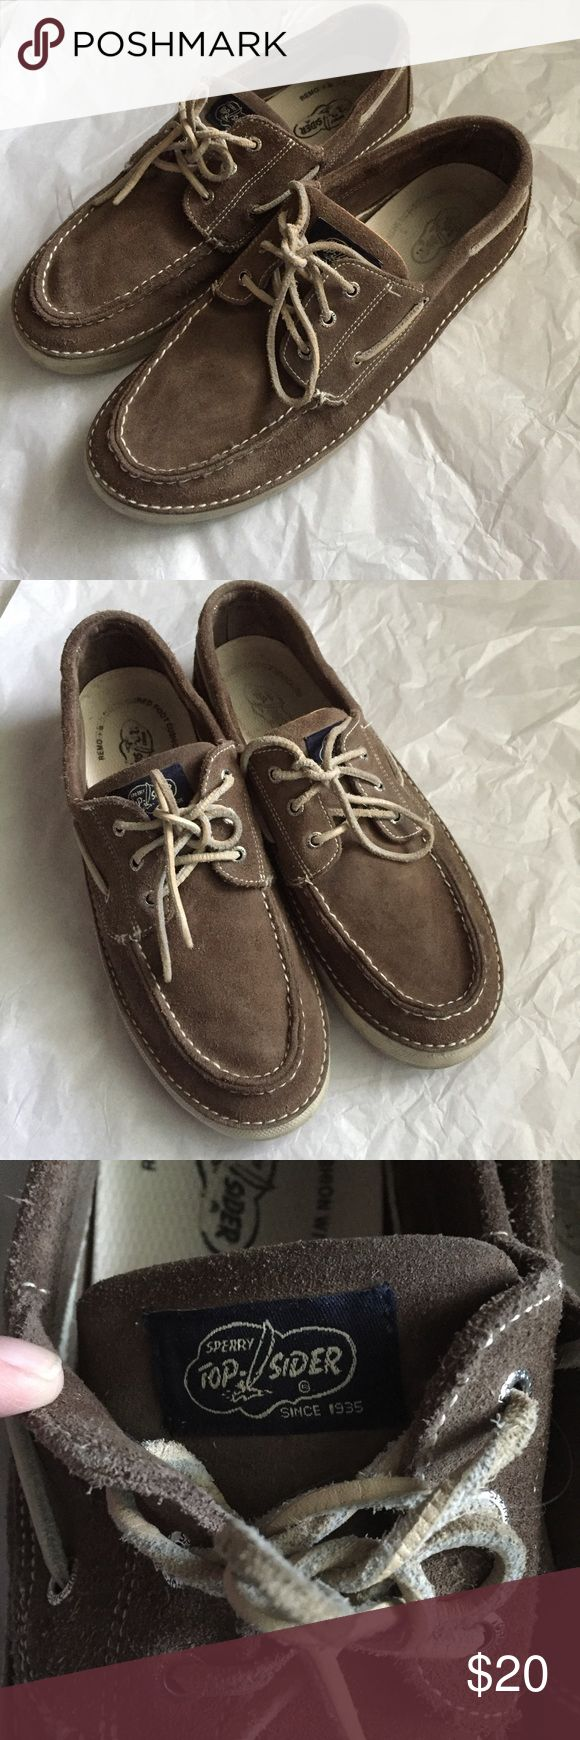 Men's Sperry's size 13! Mens suede brown leather Sperry Top-Sider! Mens size 13! Listing as used condition pricing reflects wear! comfortable sole! Sperry Top-Sider Shoes Boat Shoes